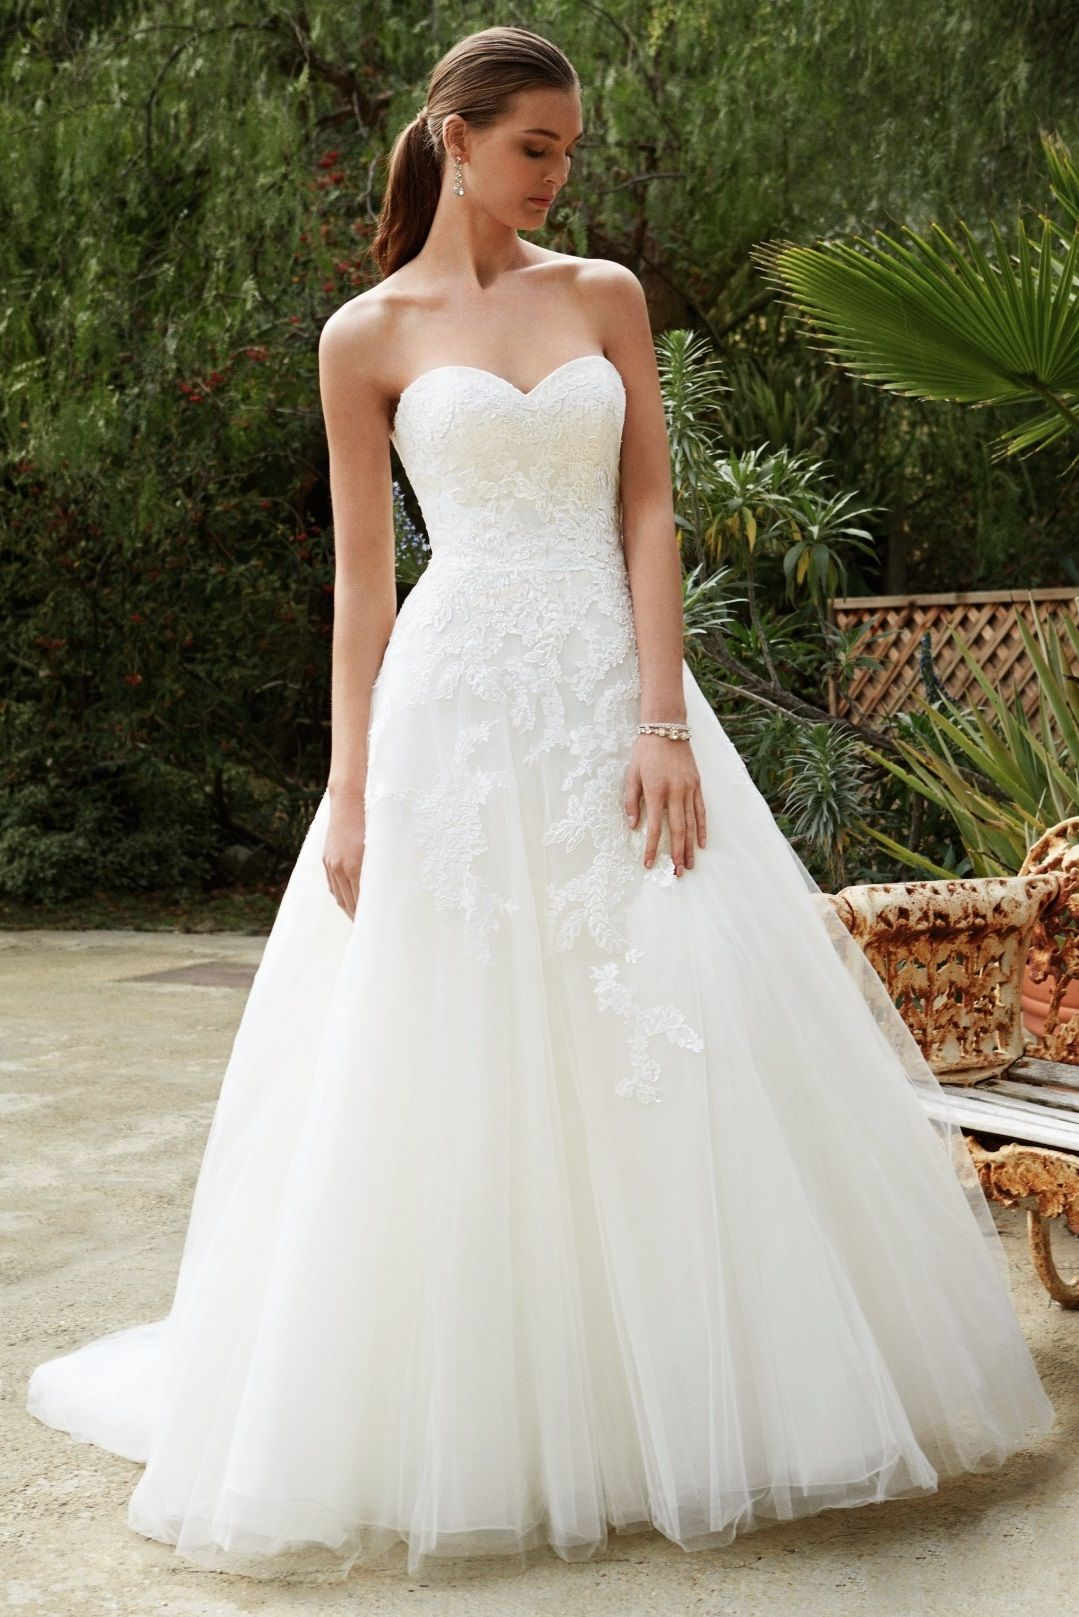 BT16-24 - Sposabella Bridal Gowns Durban A Corded lace and Chantilly ...